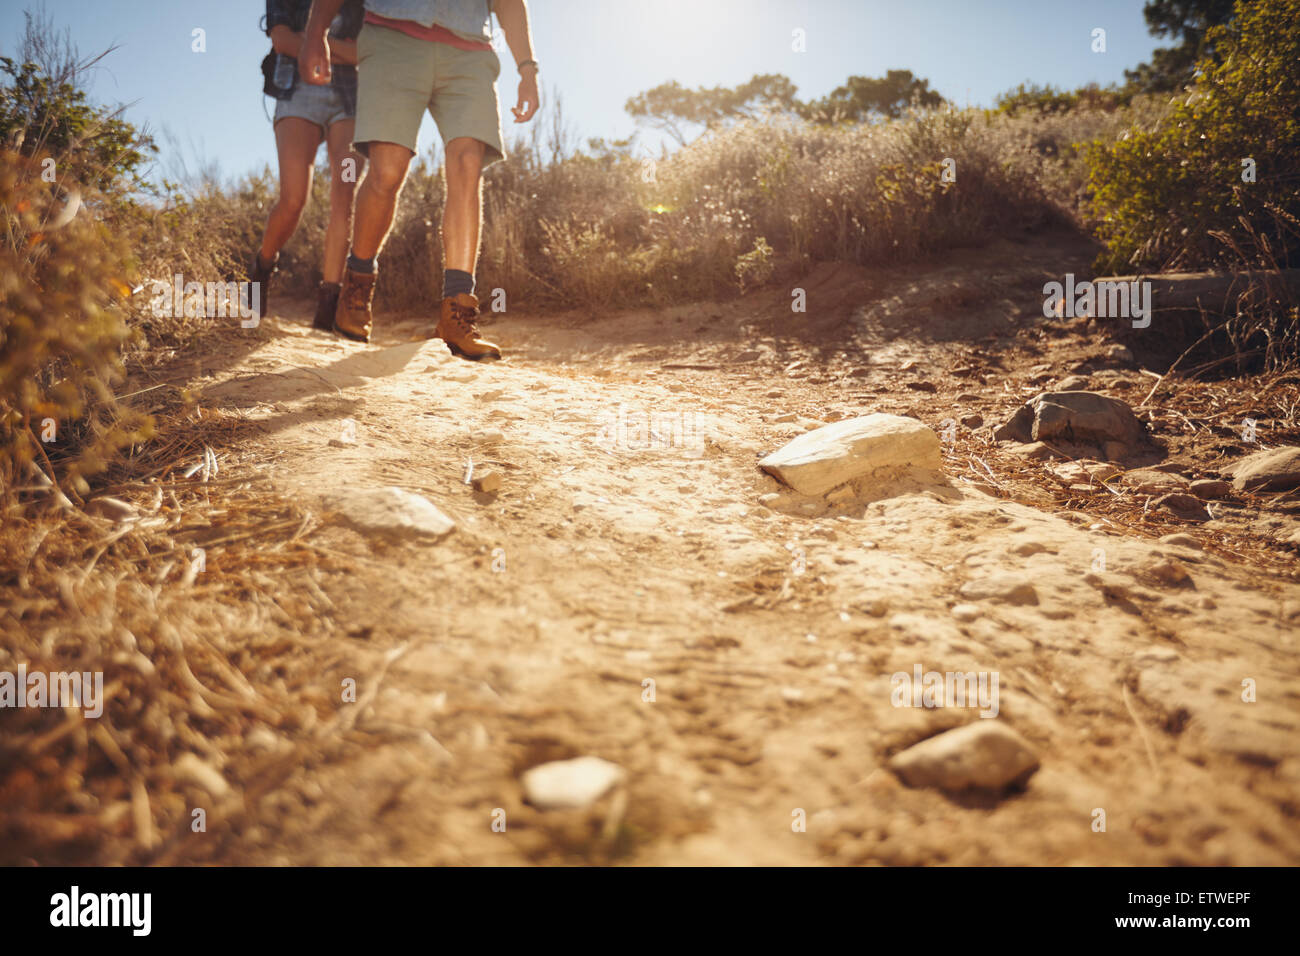 Low angle view of two people hiking along a dirt trail in the wilderness.  Couple of hikers walking on country path. - Stock Image